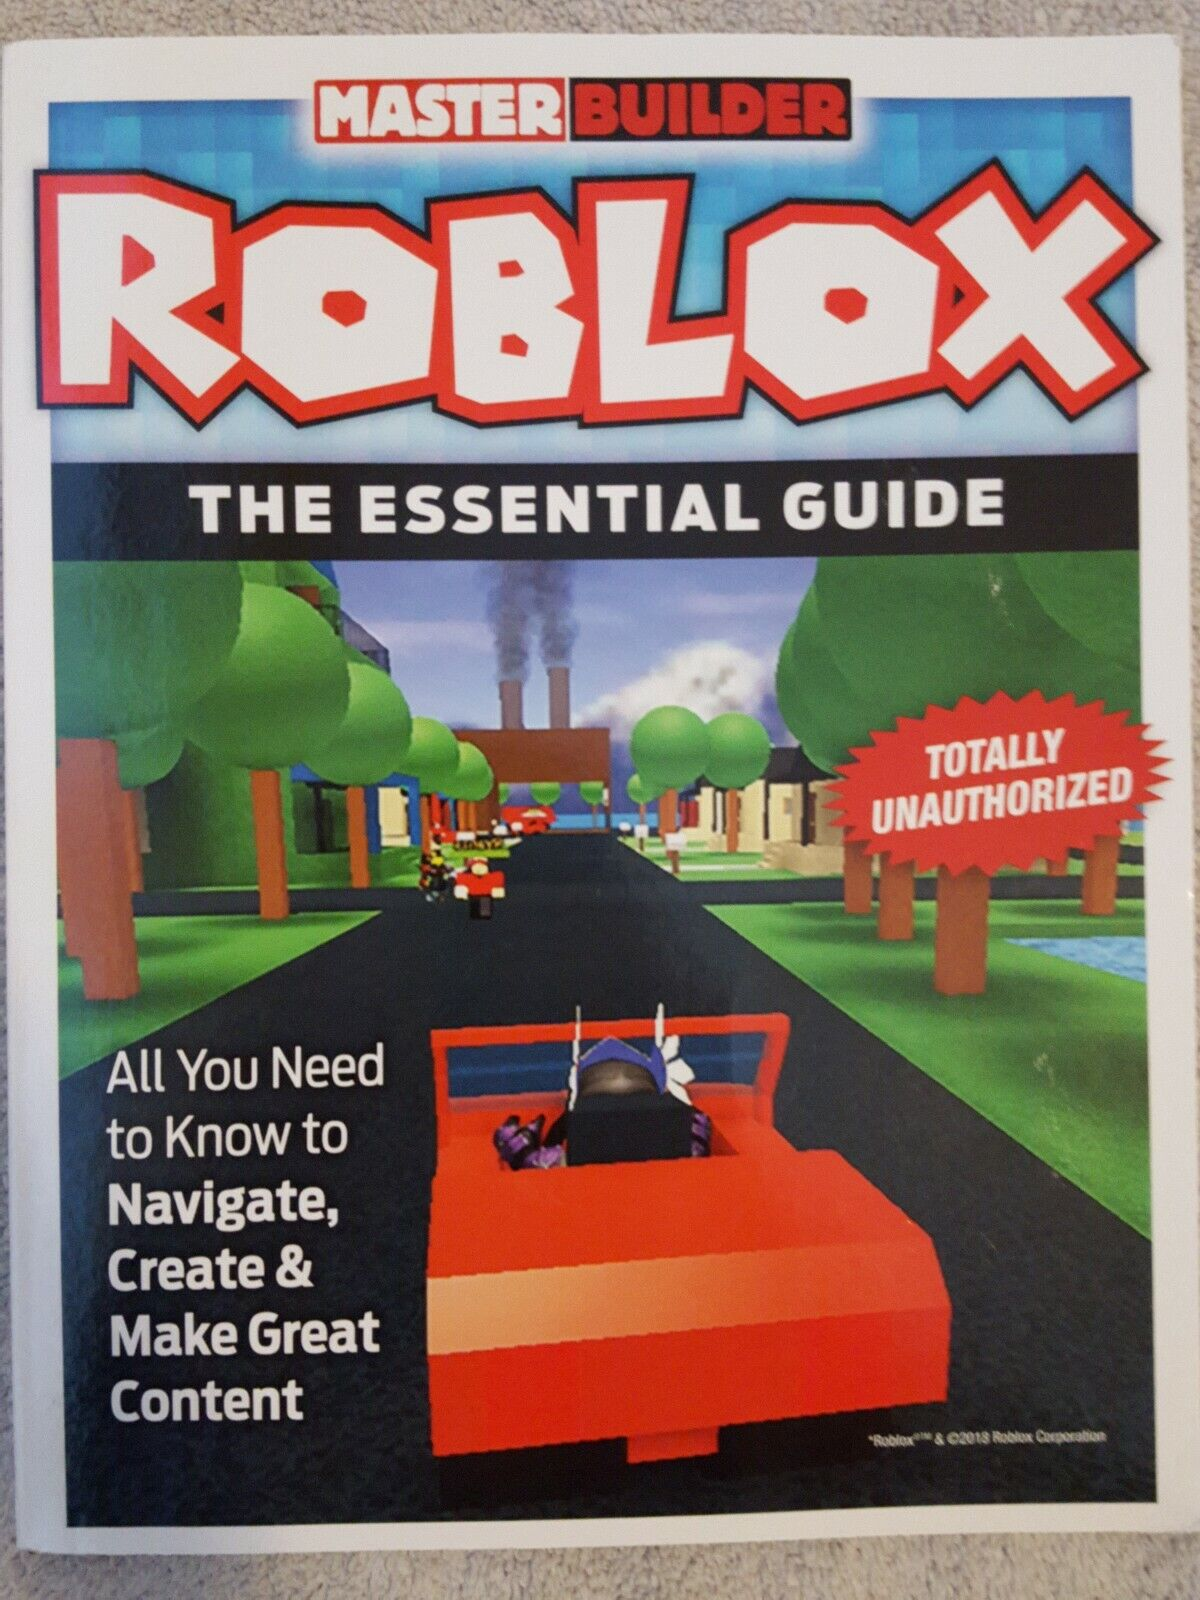 Roblox Master Gamers Guide The Ultimate Guide To Finding Making And Beating The Best Roblox Gamespaperback - Roblox The Essential Guide Book How To Get Free Robux On